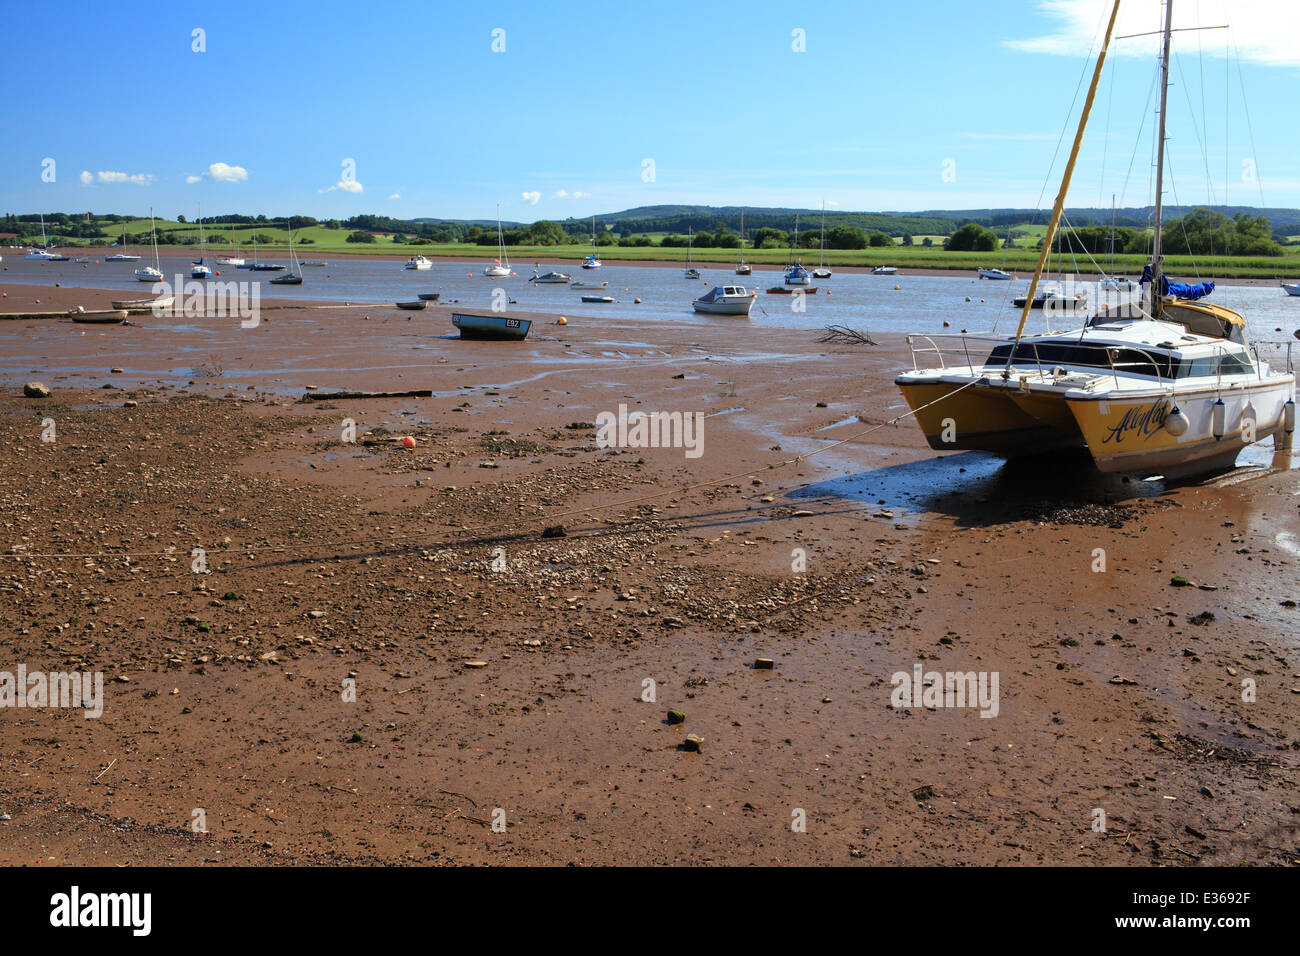 Topsham waterfront, Devon, England, UK - Stock Image